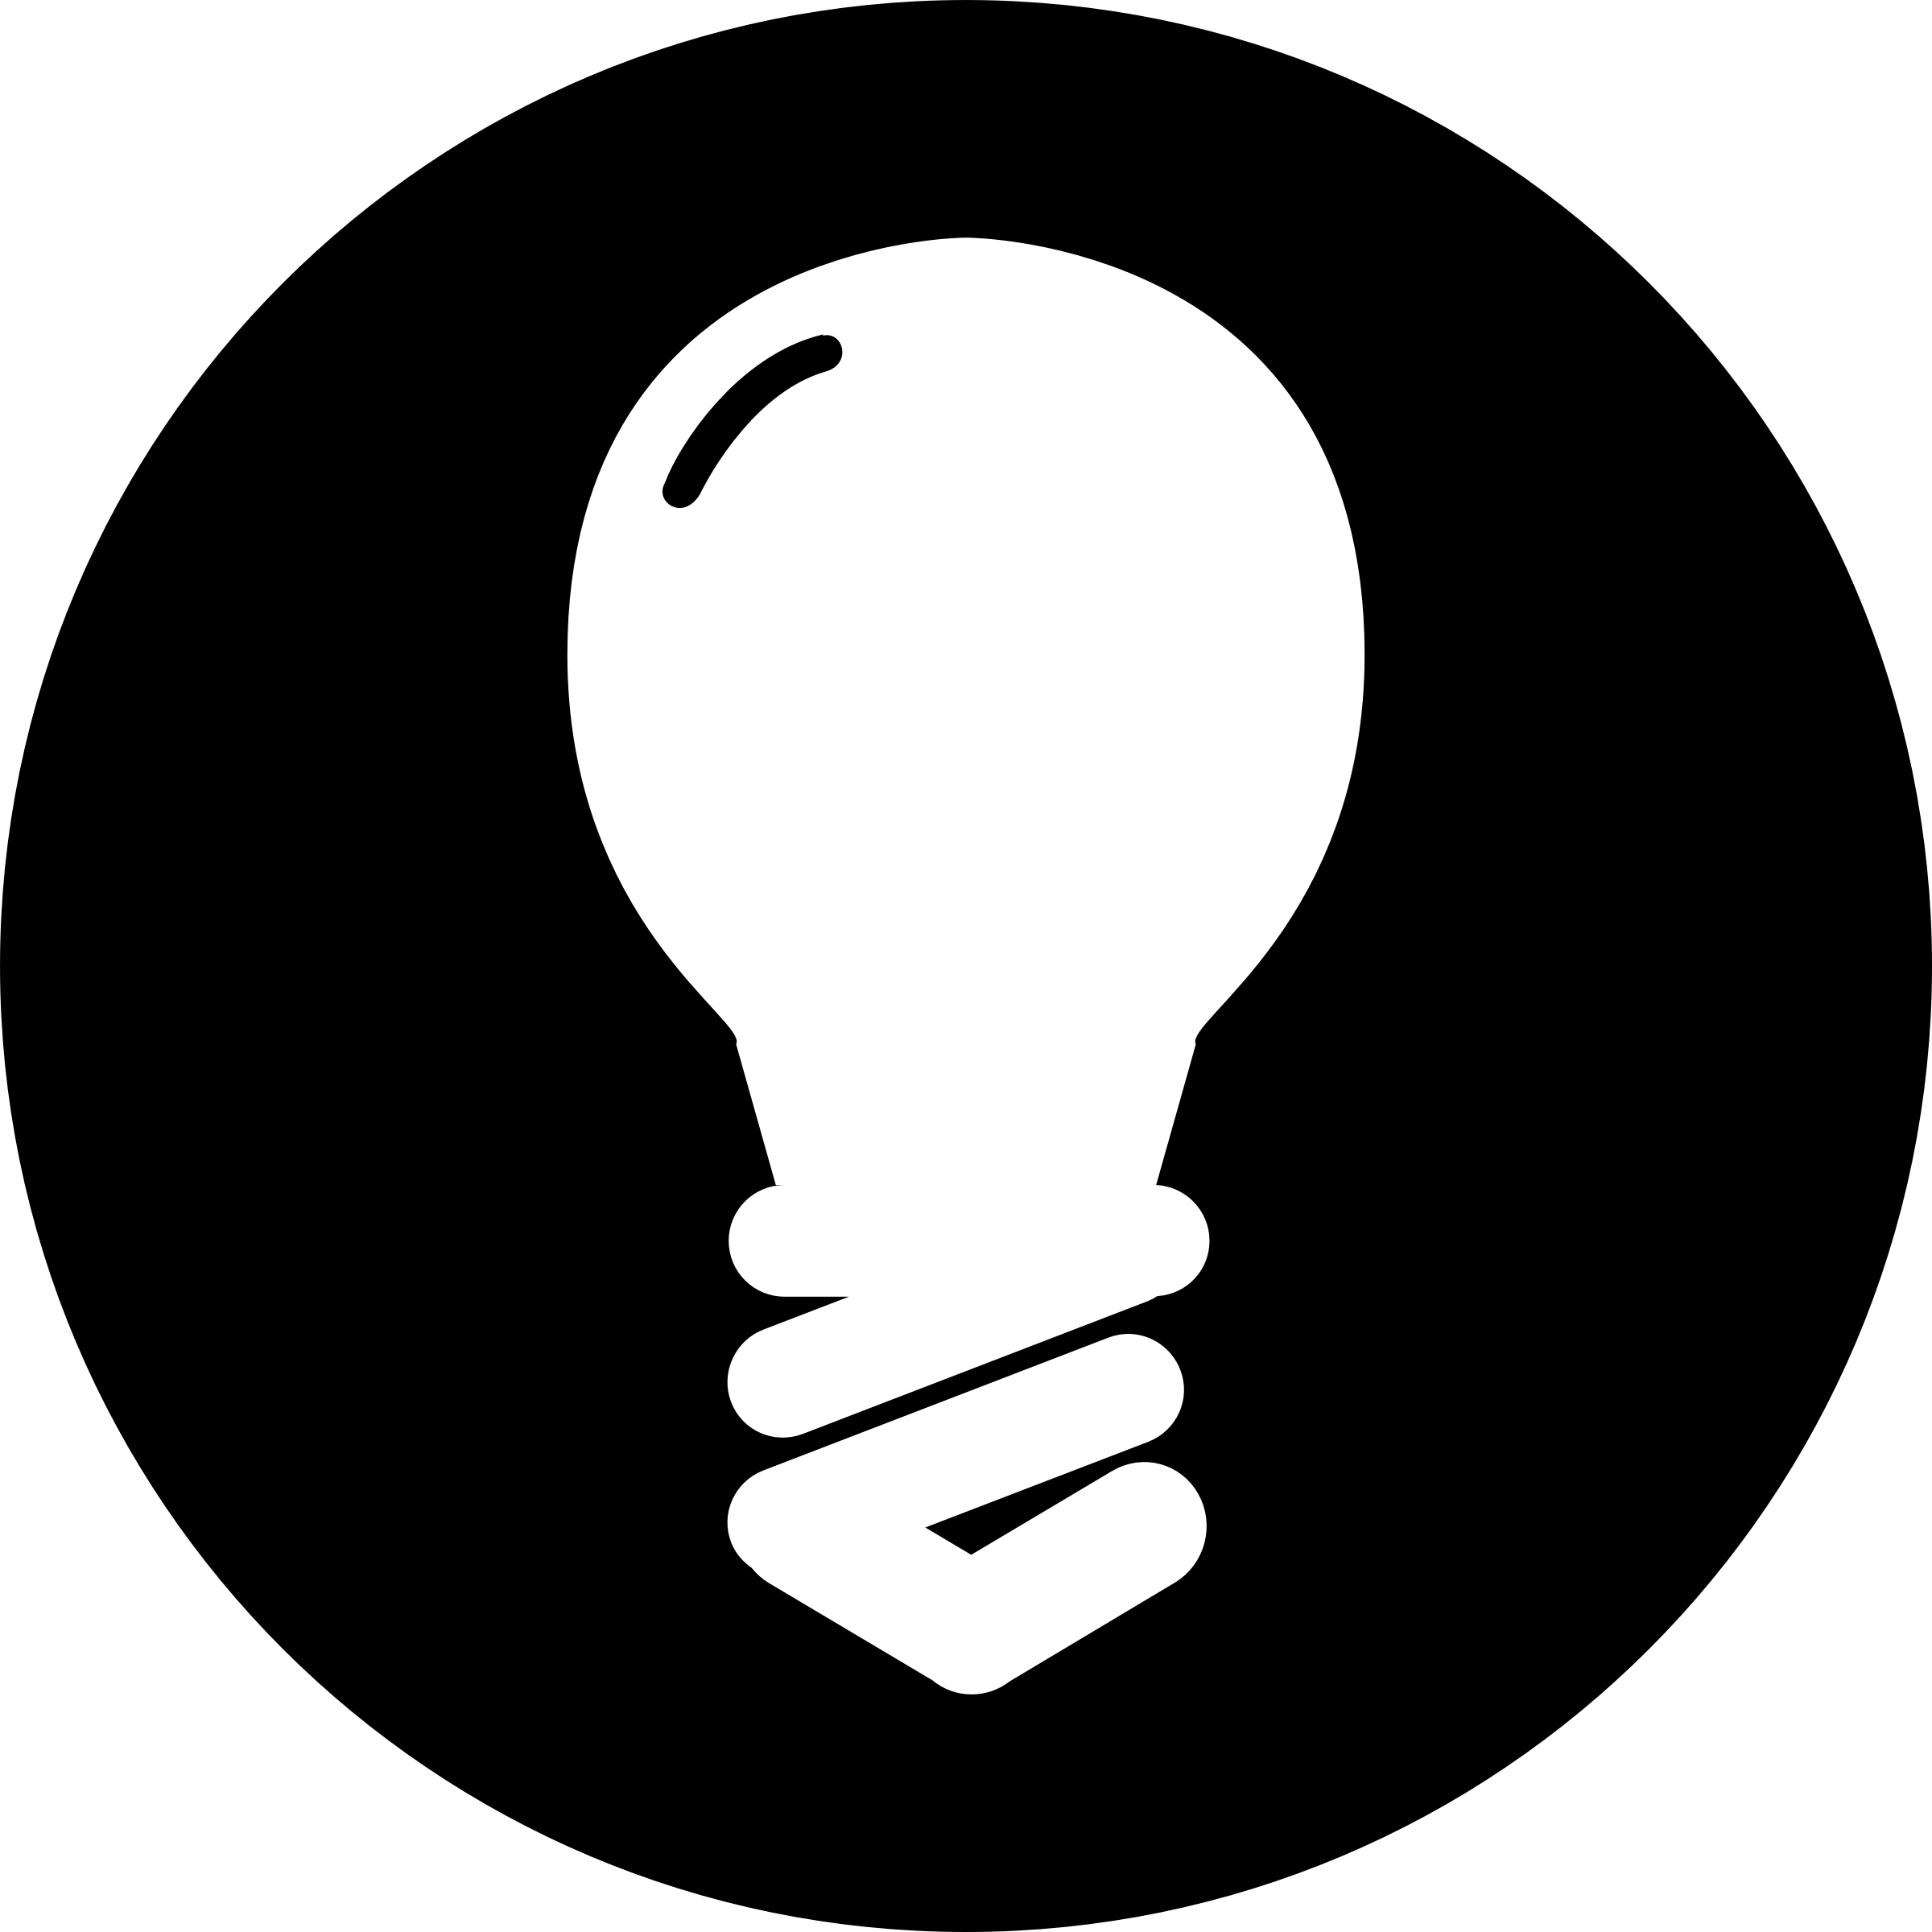 Icons free and downloads. Light bulb icon png